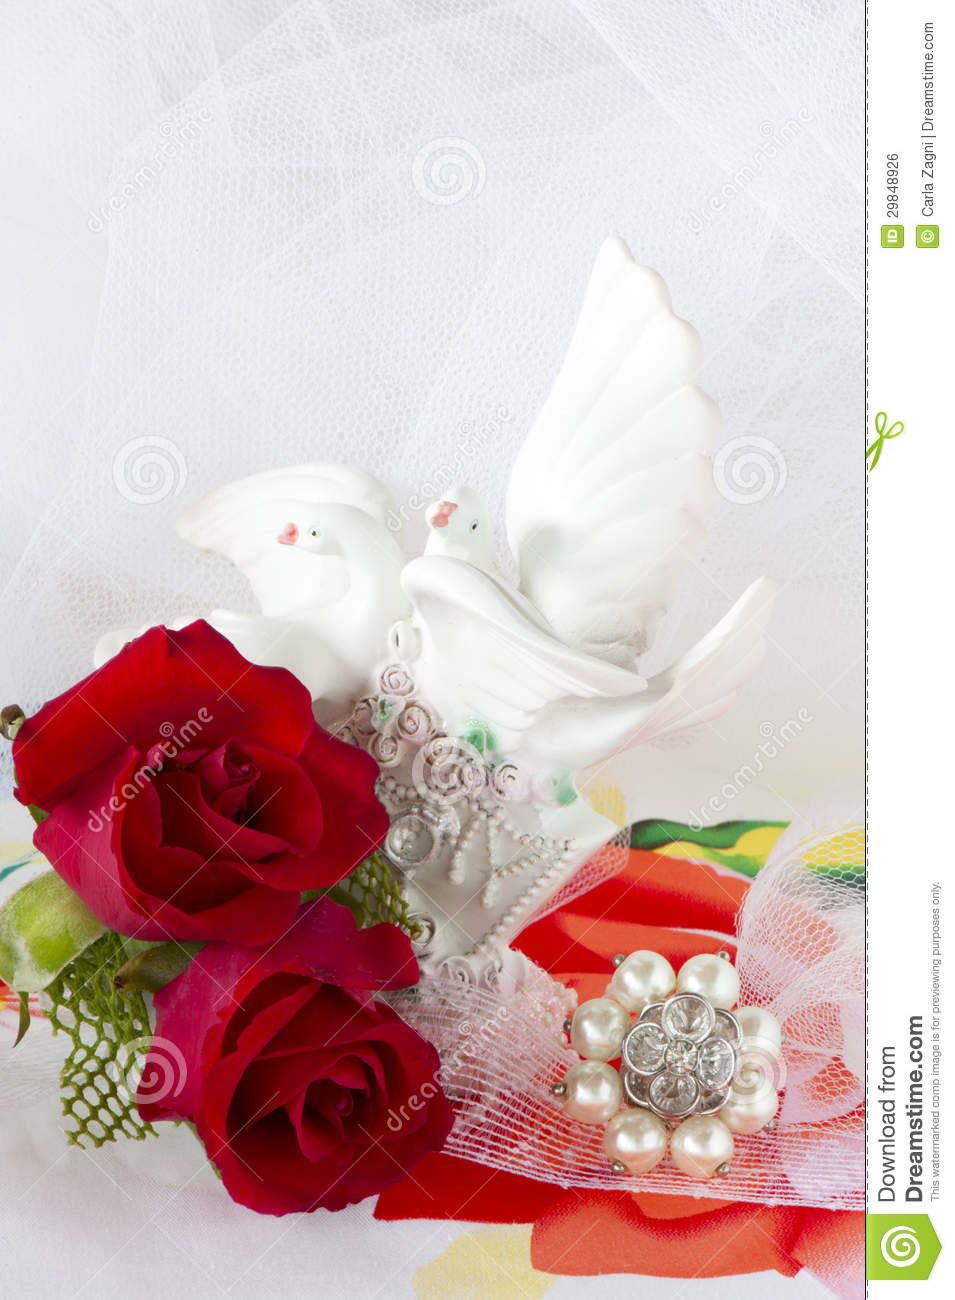 Red Roses And Wedding Rings Stock Photo  Image of diamond